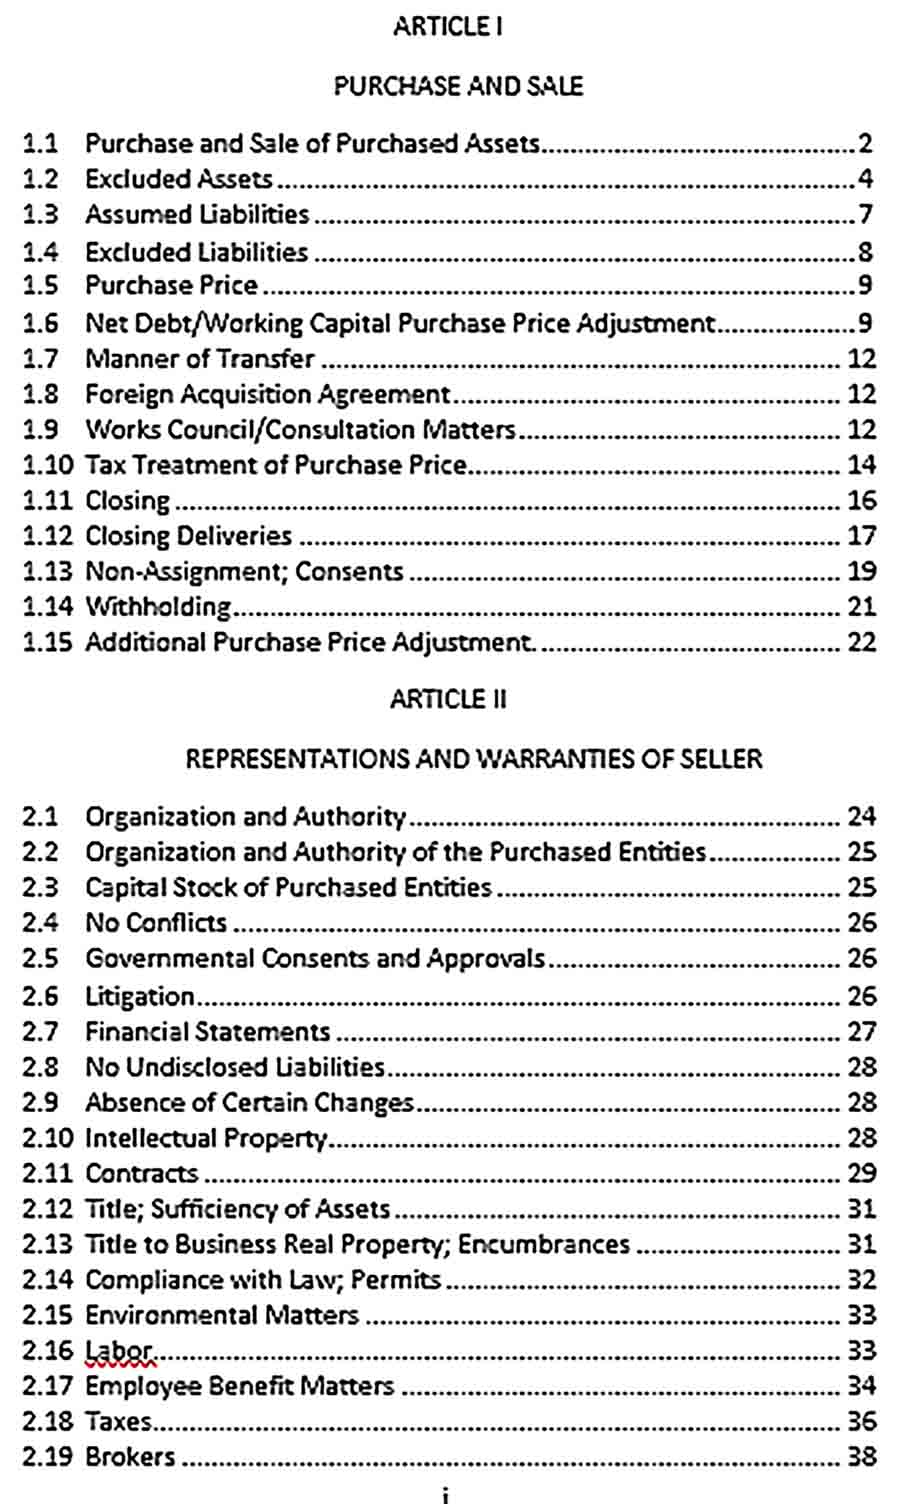 Sample Equity and Asset Purchase Agreement Executed1